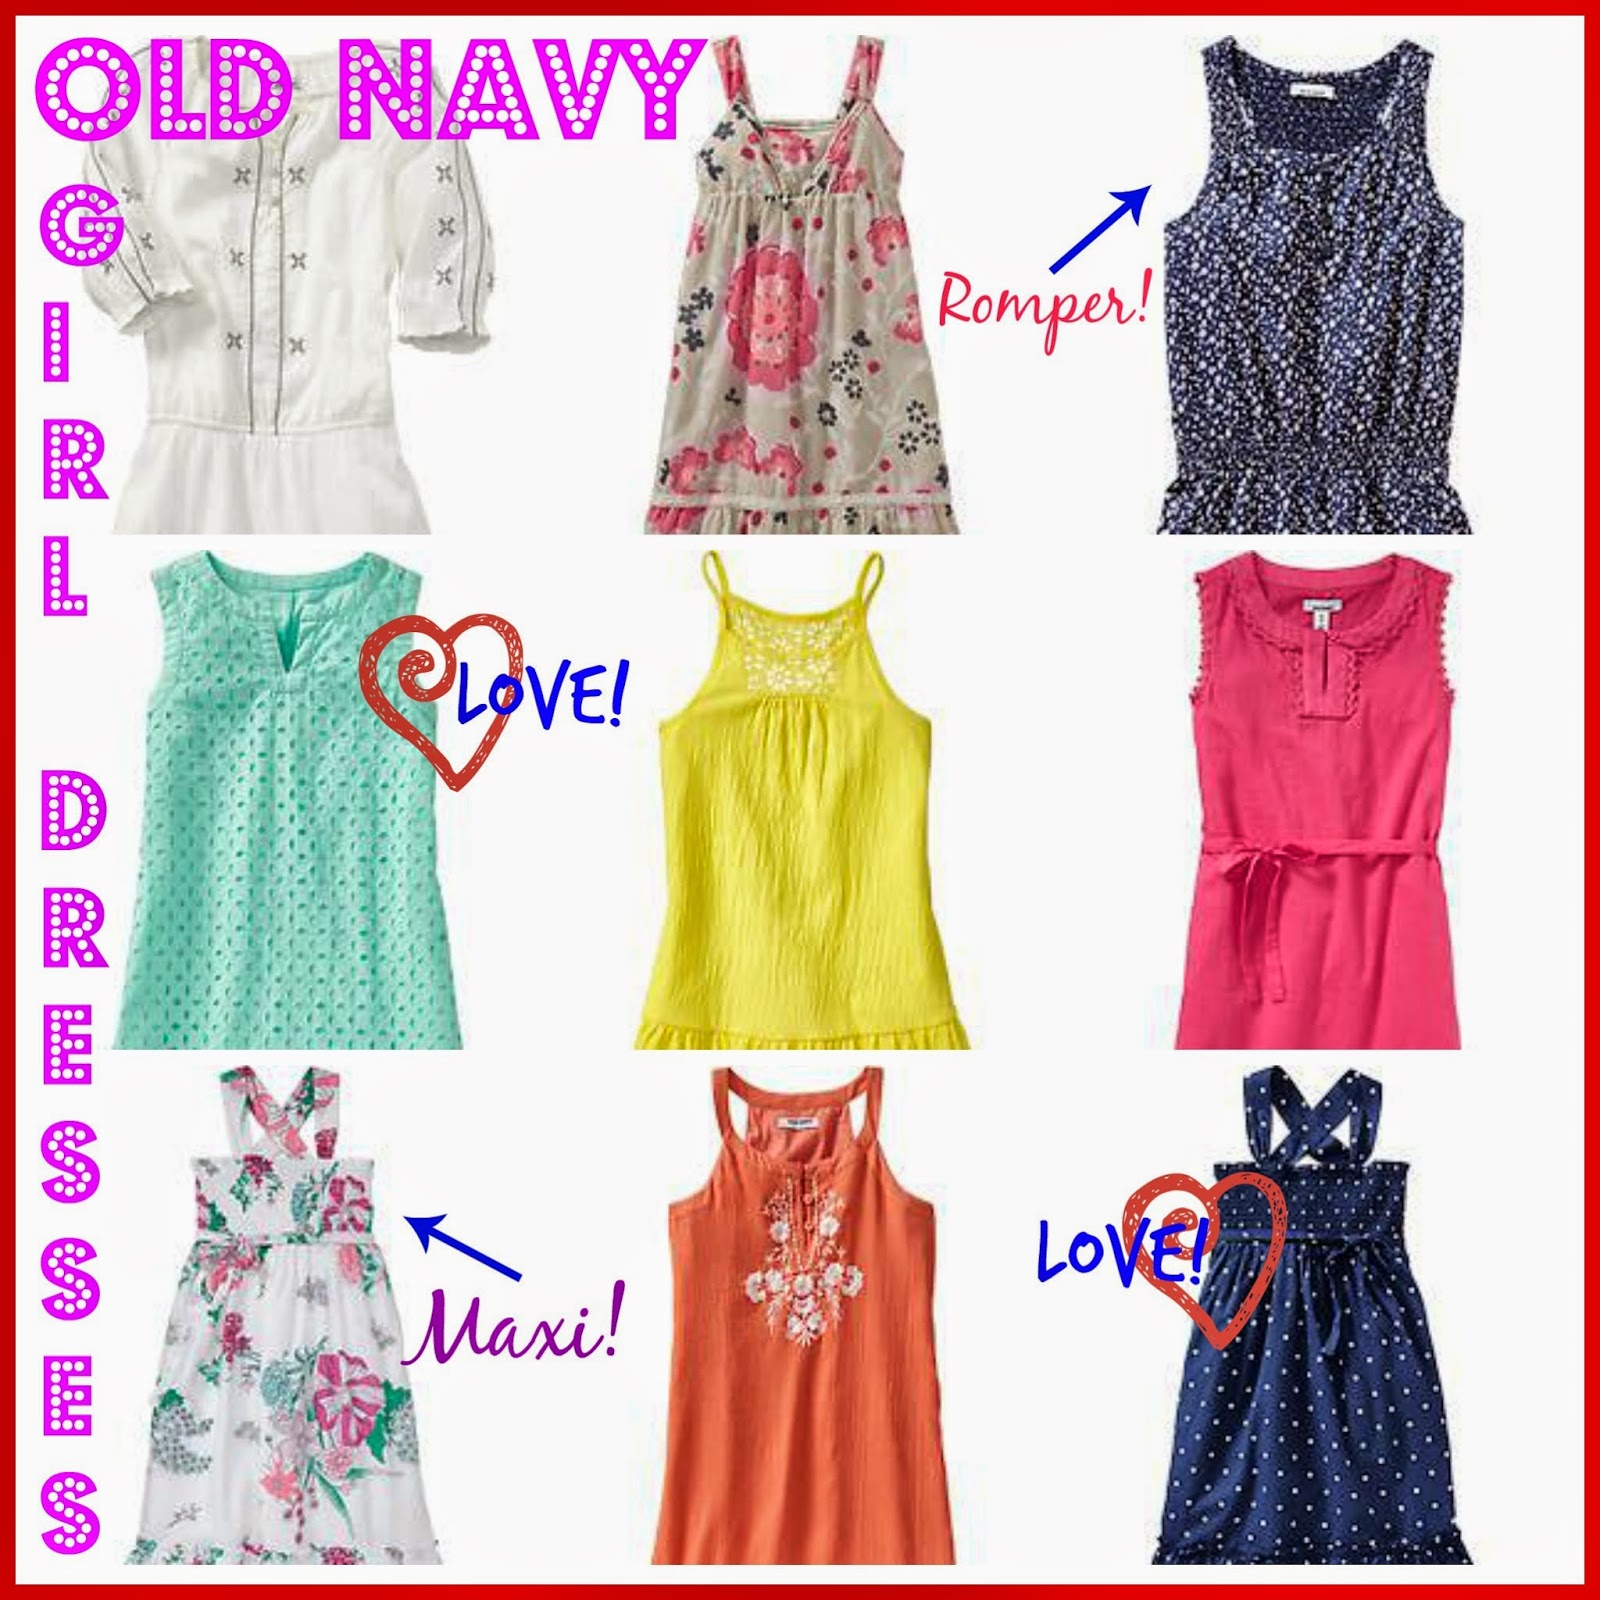 My Favorite Dresses for Girls from Old Navy oldnavybaby Our